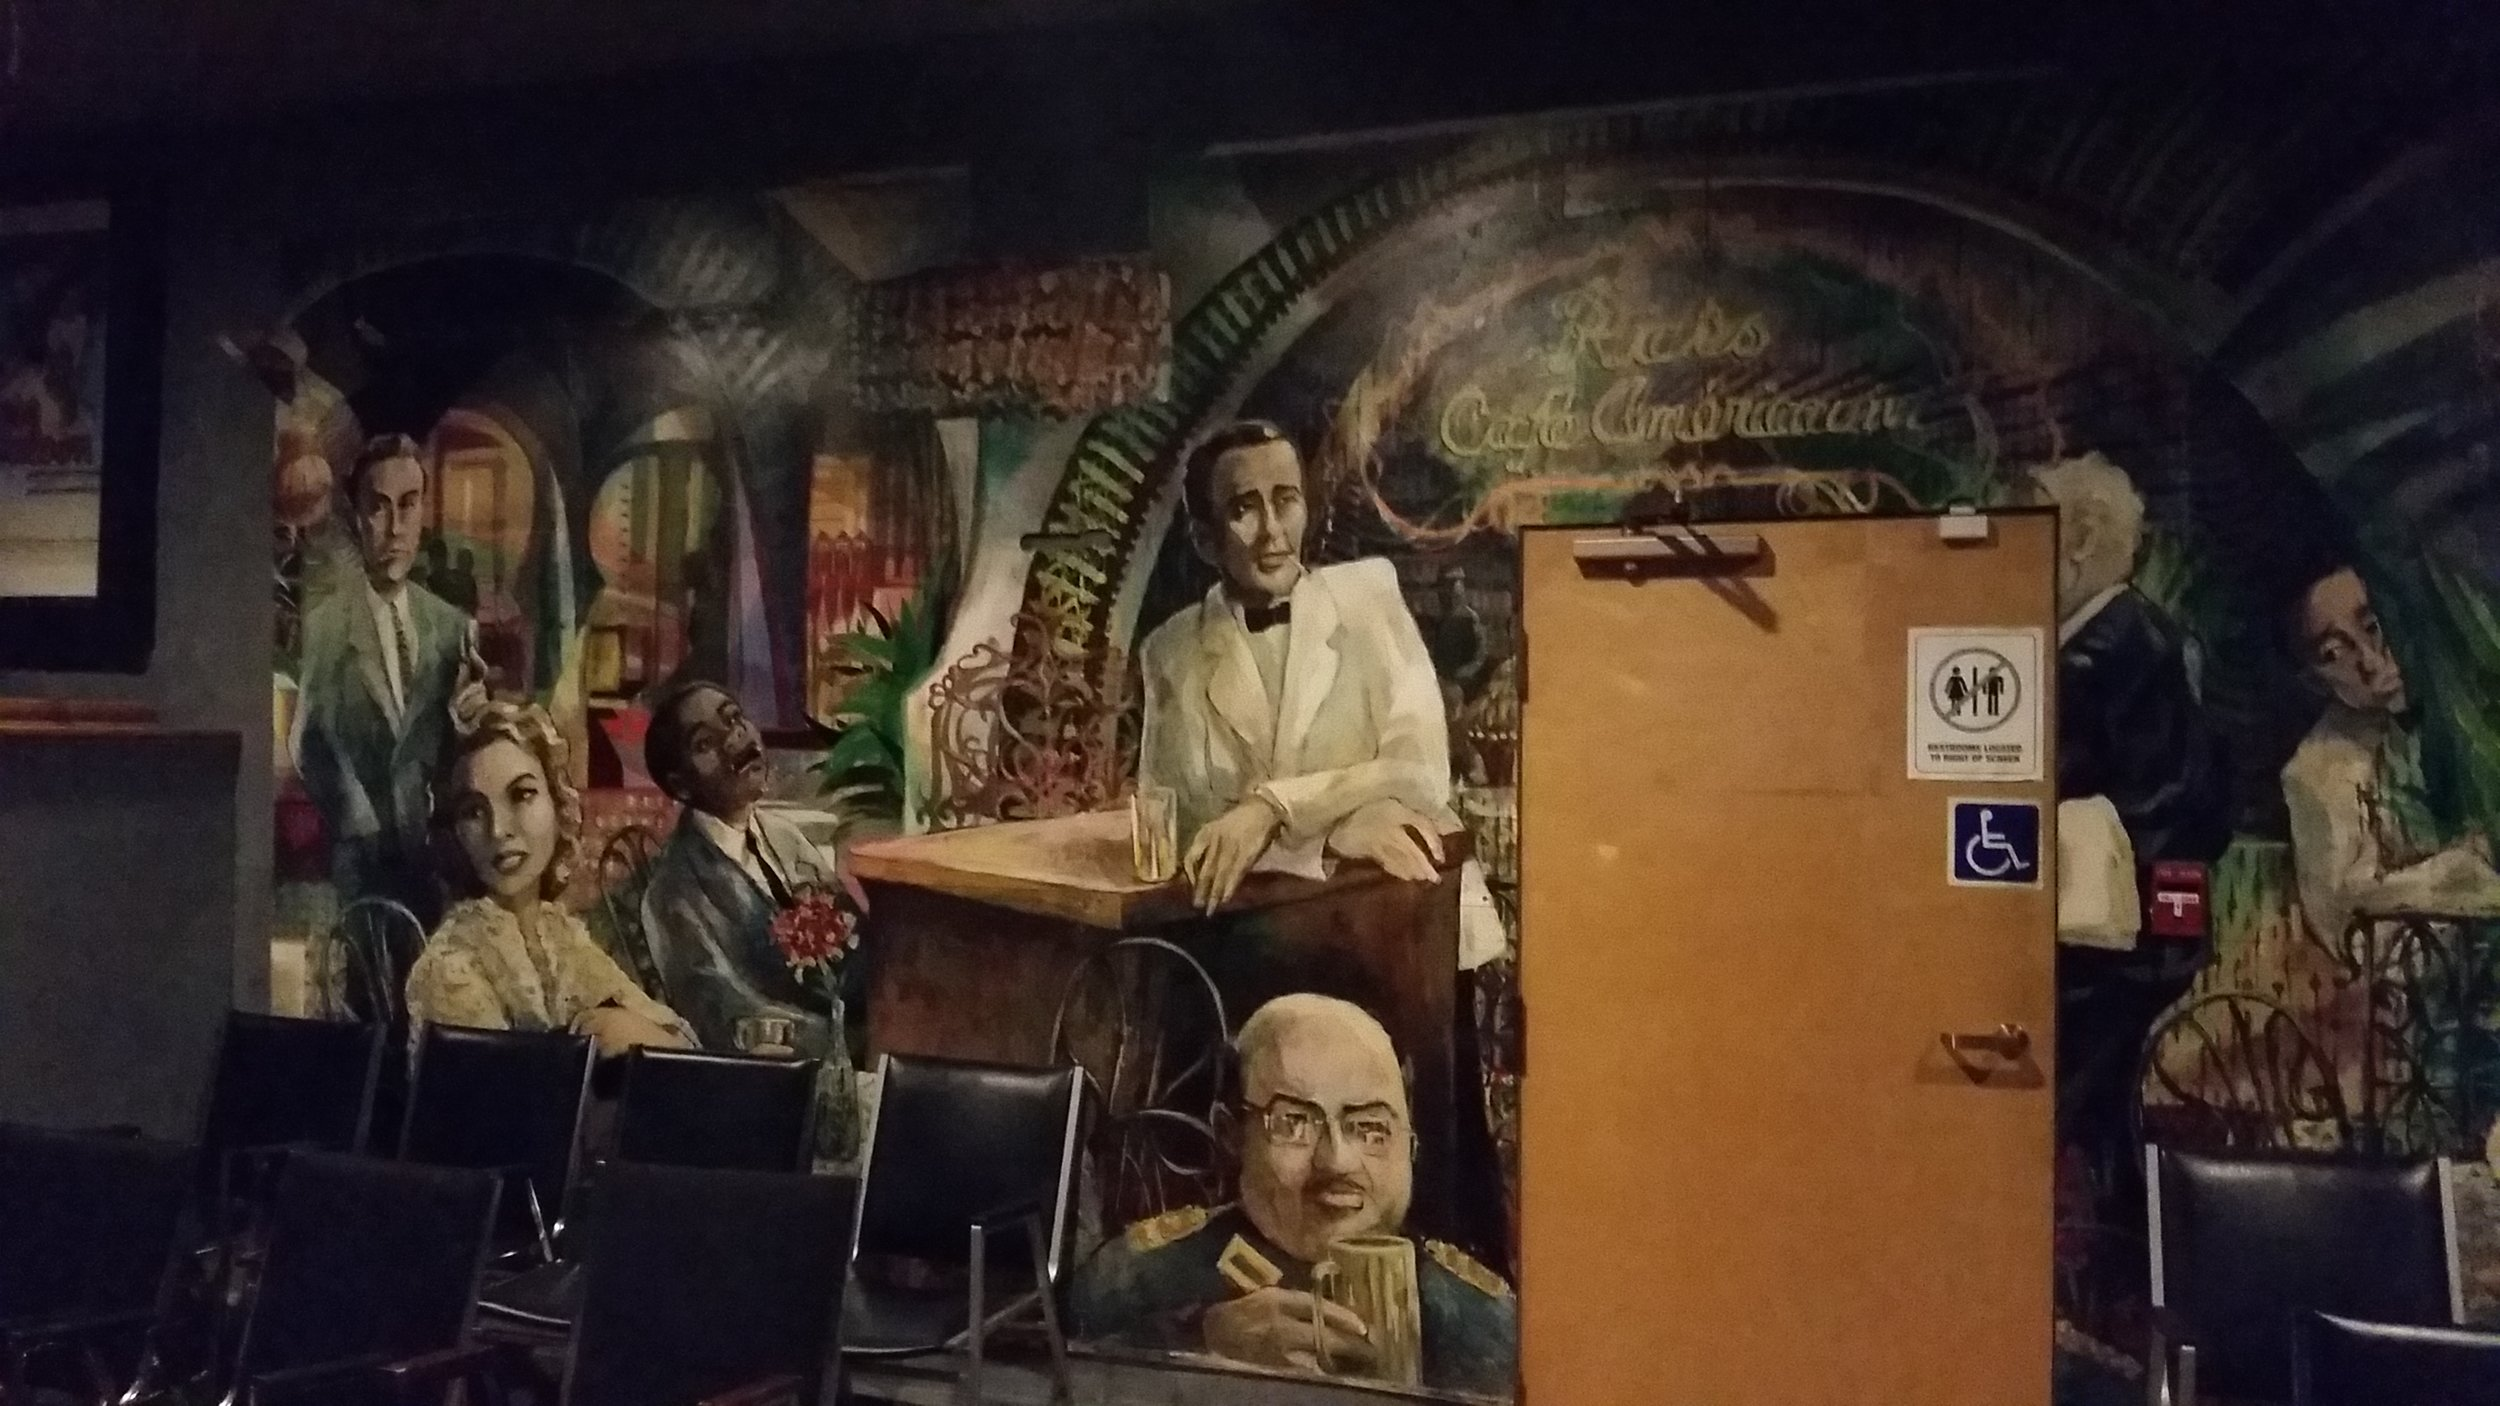 One of the murals from the now-closed Casablanca restaurant.